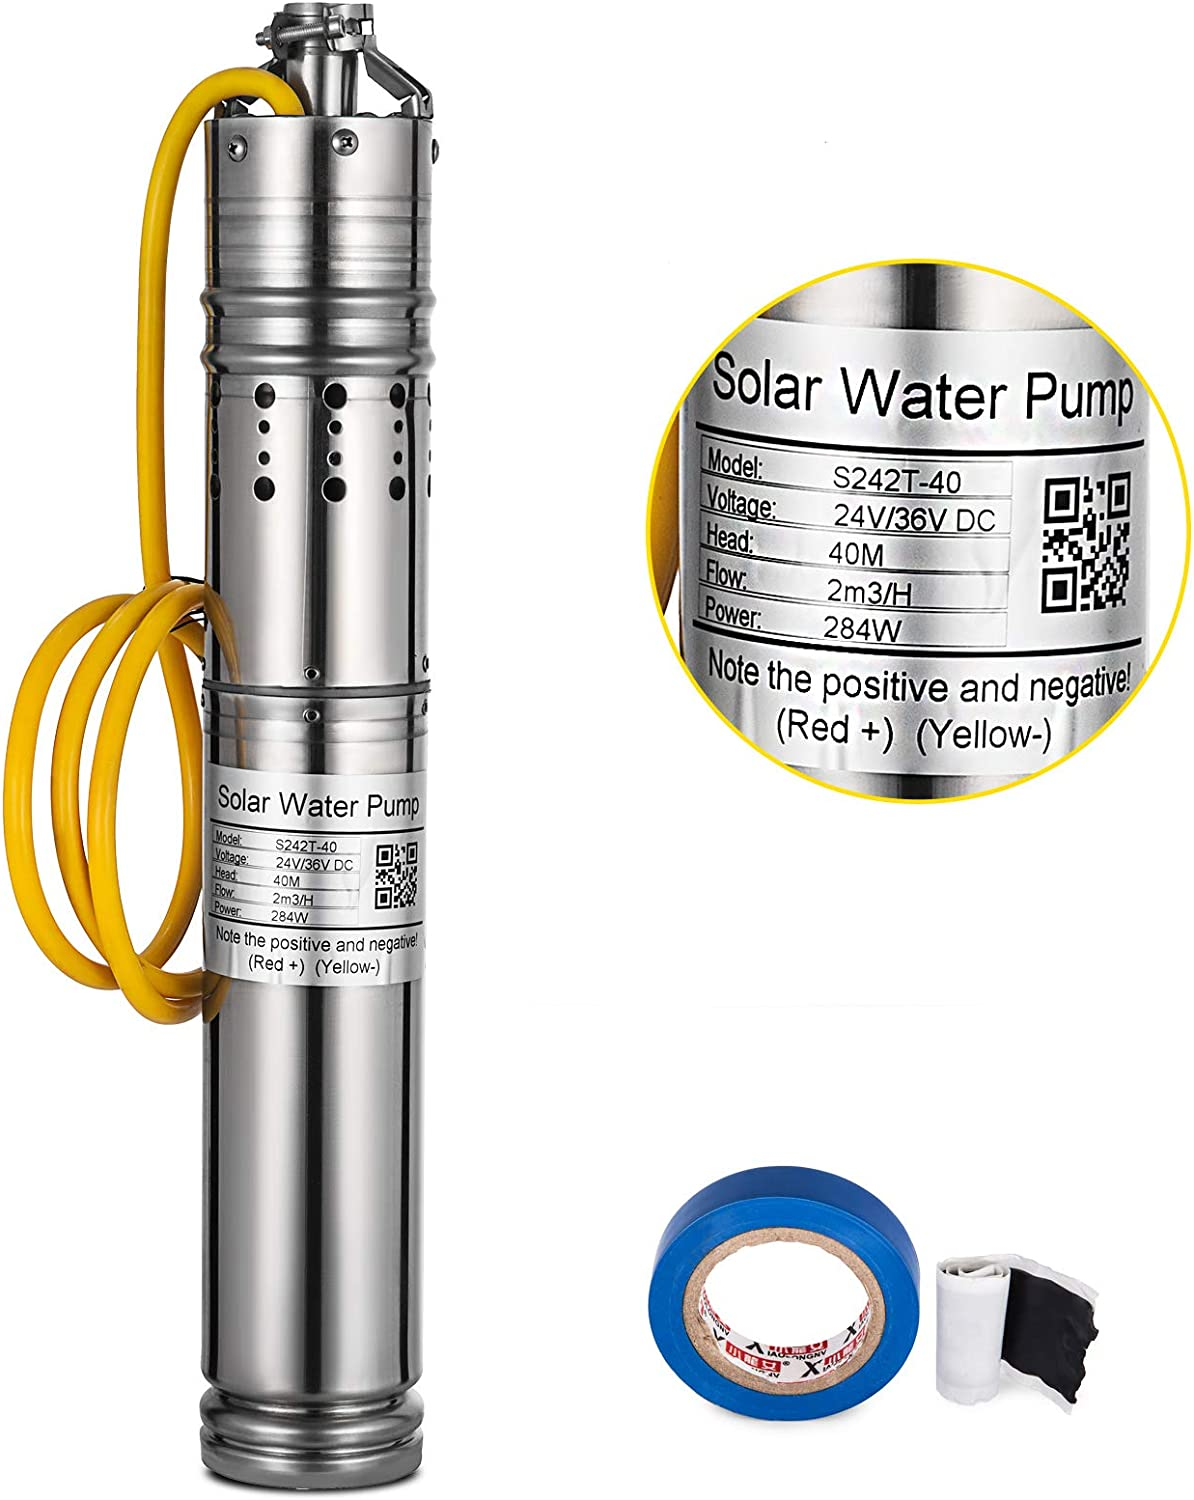 S242T-40 MosaicAL Solar Powered Water Pump 284W Deep Well Pump Submersible Pump 24V//36V DC Stainless Steel 2m3//h 40M Solar Water Pump for Fountains